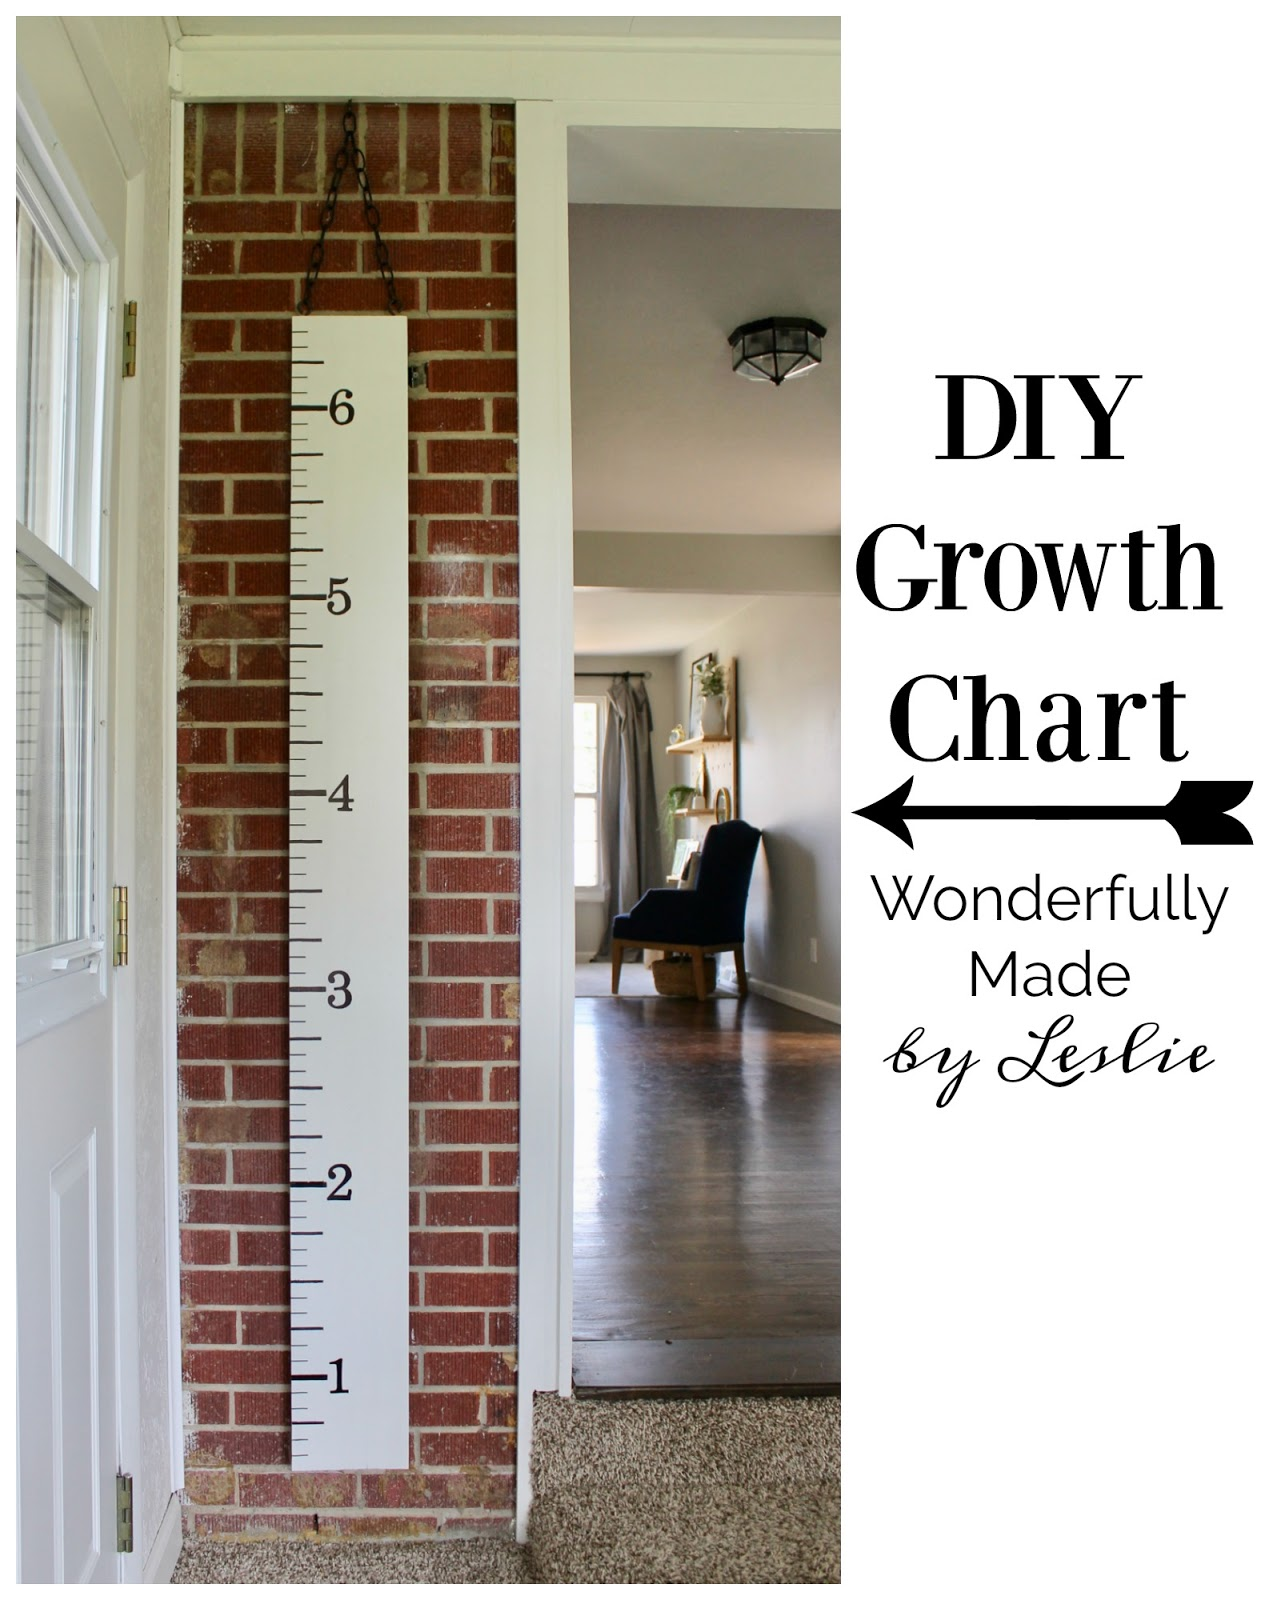 Wonderfully made diy growth chart diy growth chart nvjuhfo Gallery